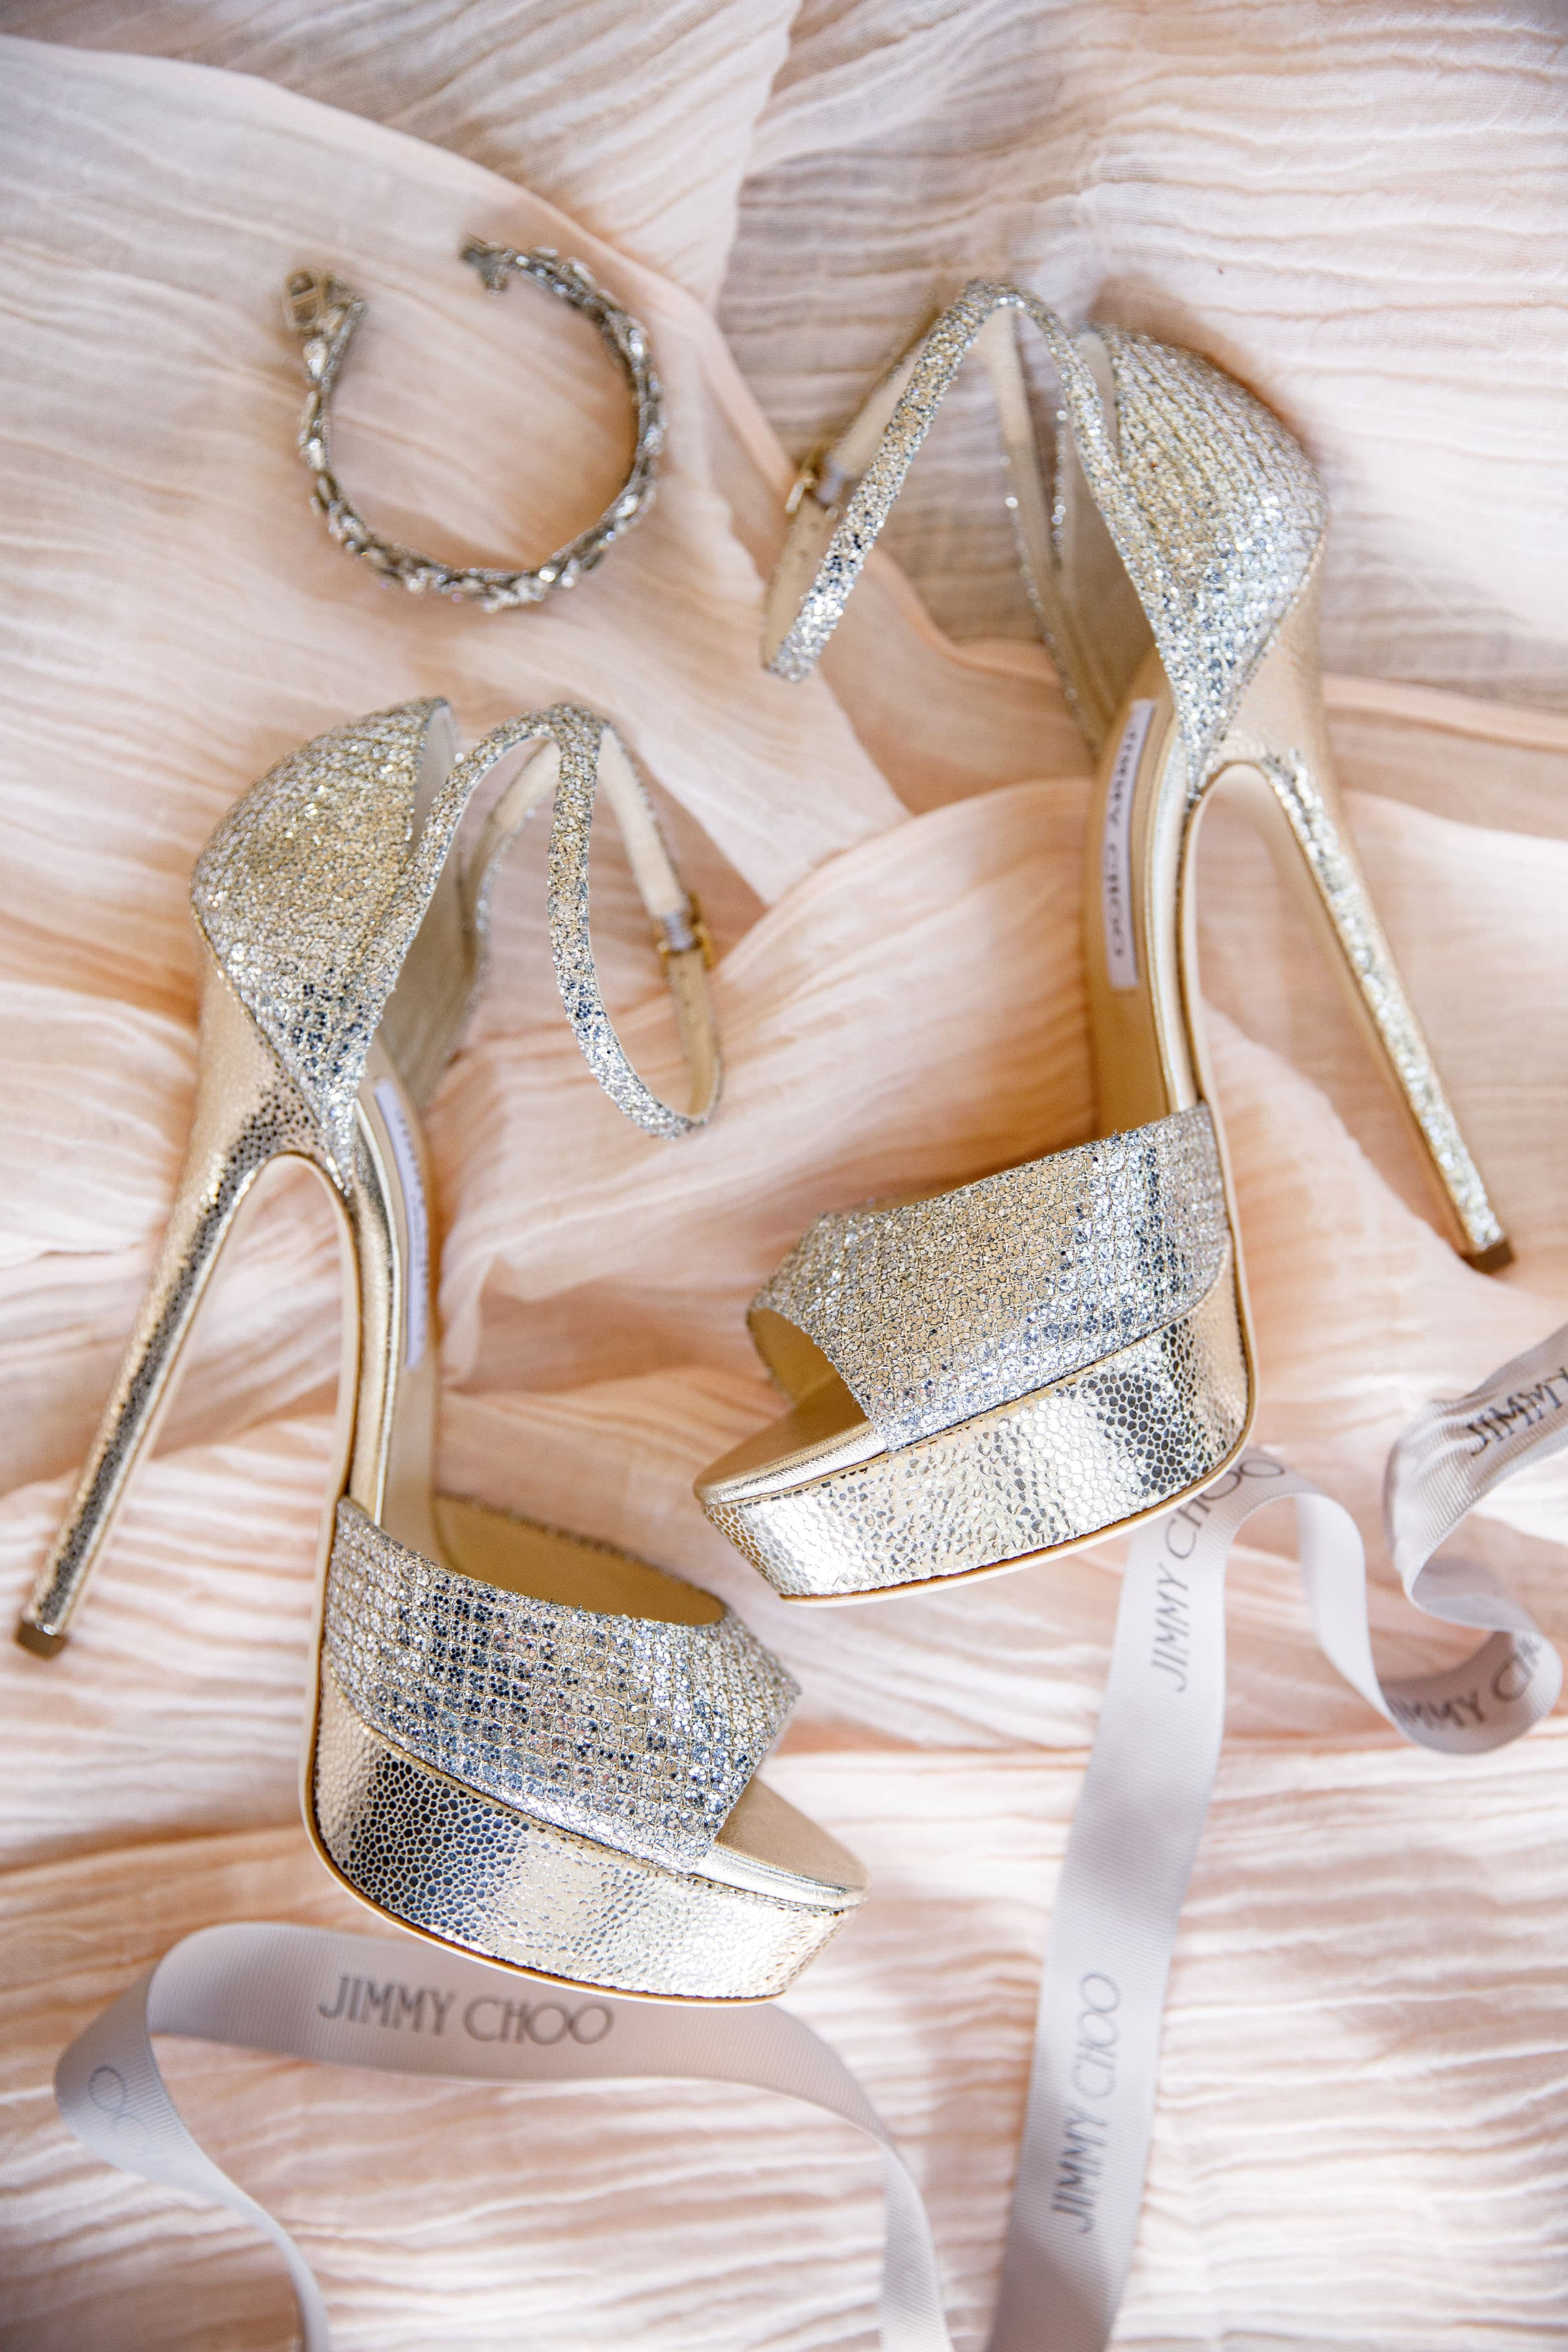 Wedding Shoes and Jewlery on Pink Satin